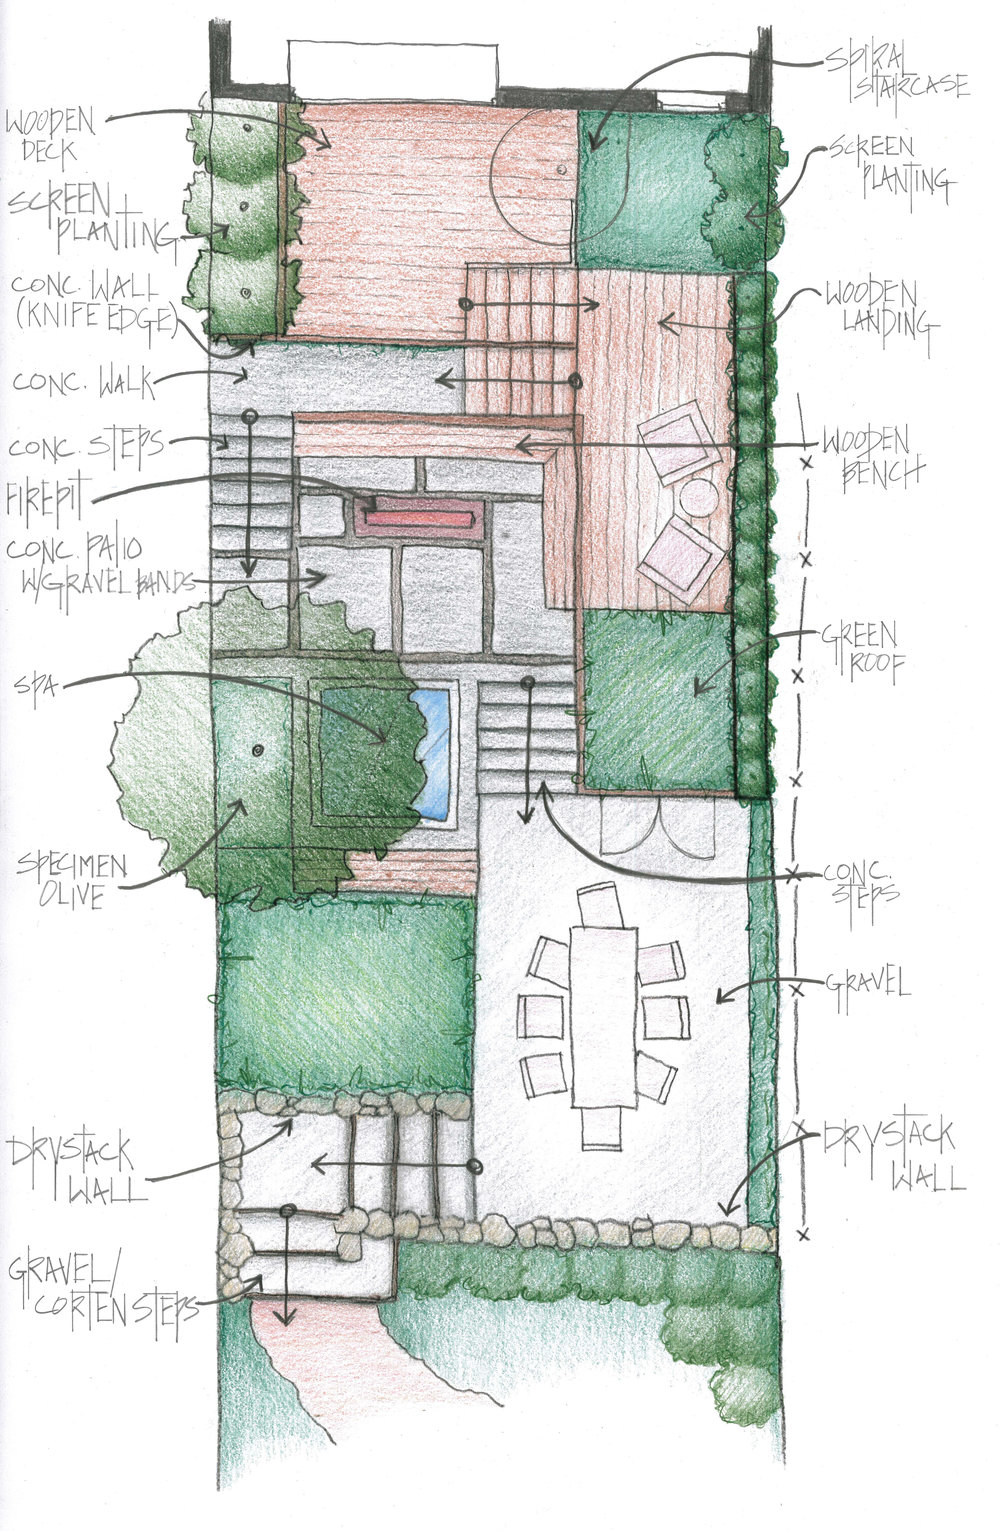 A hand-drawn conceptual plan shows an overview of the landscape.